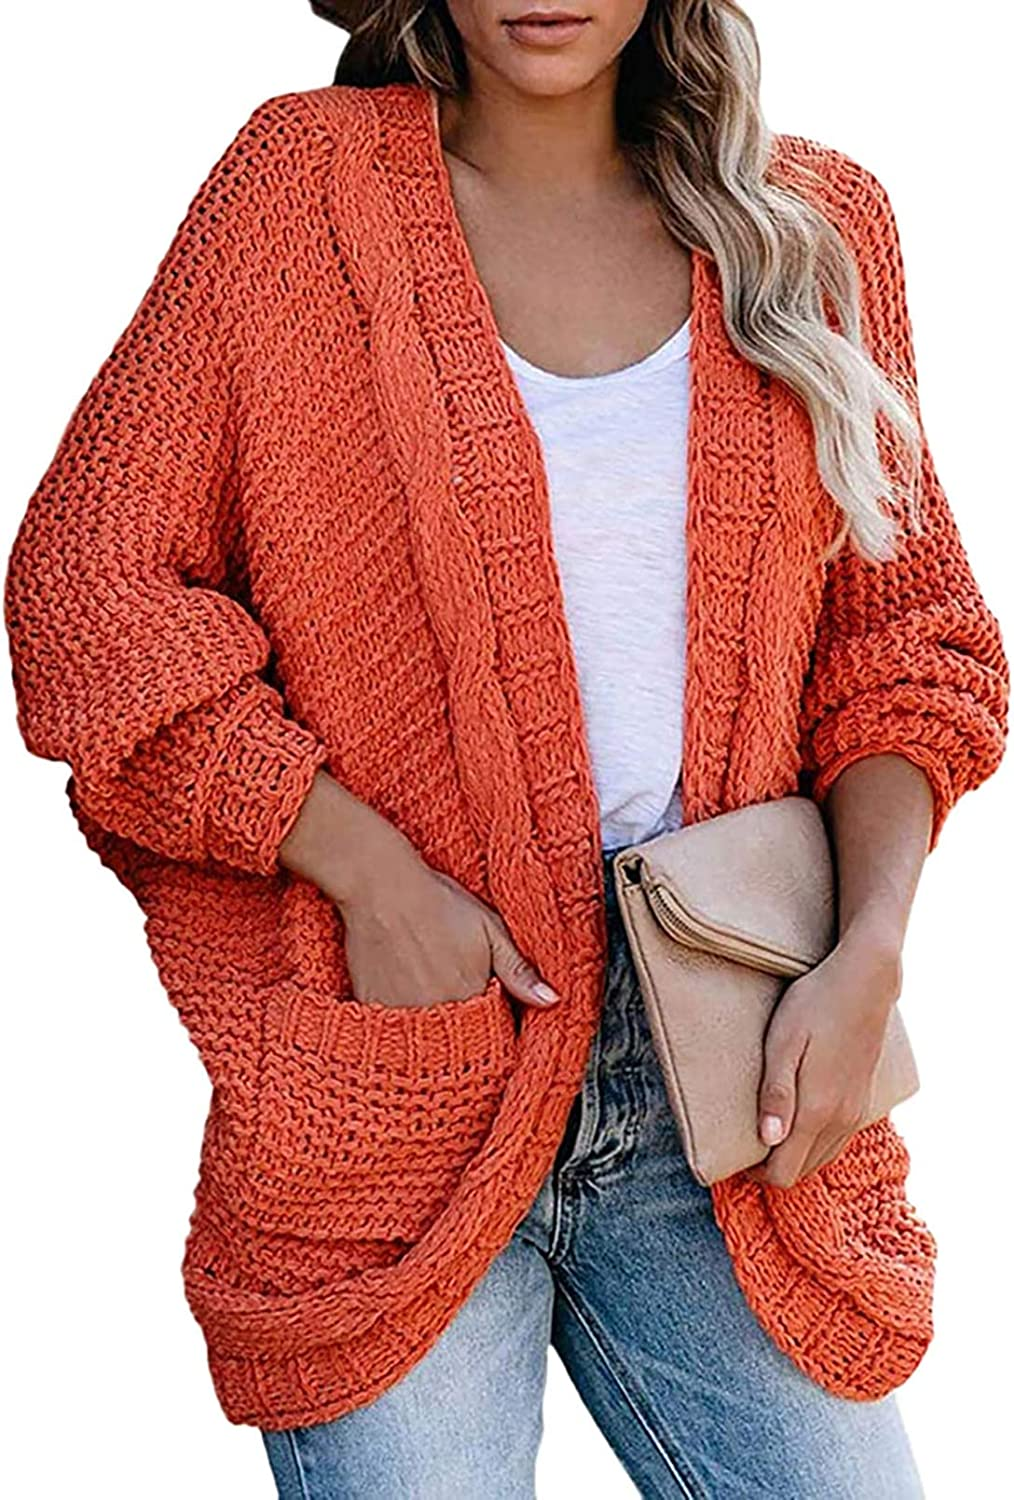 Women's Solid Plain Color Cable Knitted Cardigan Long Sleeve Open Front Cardigans Sweater Coat